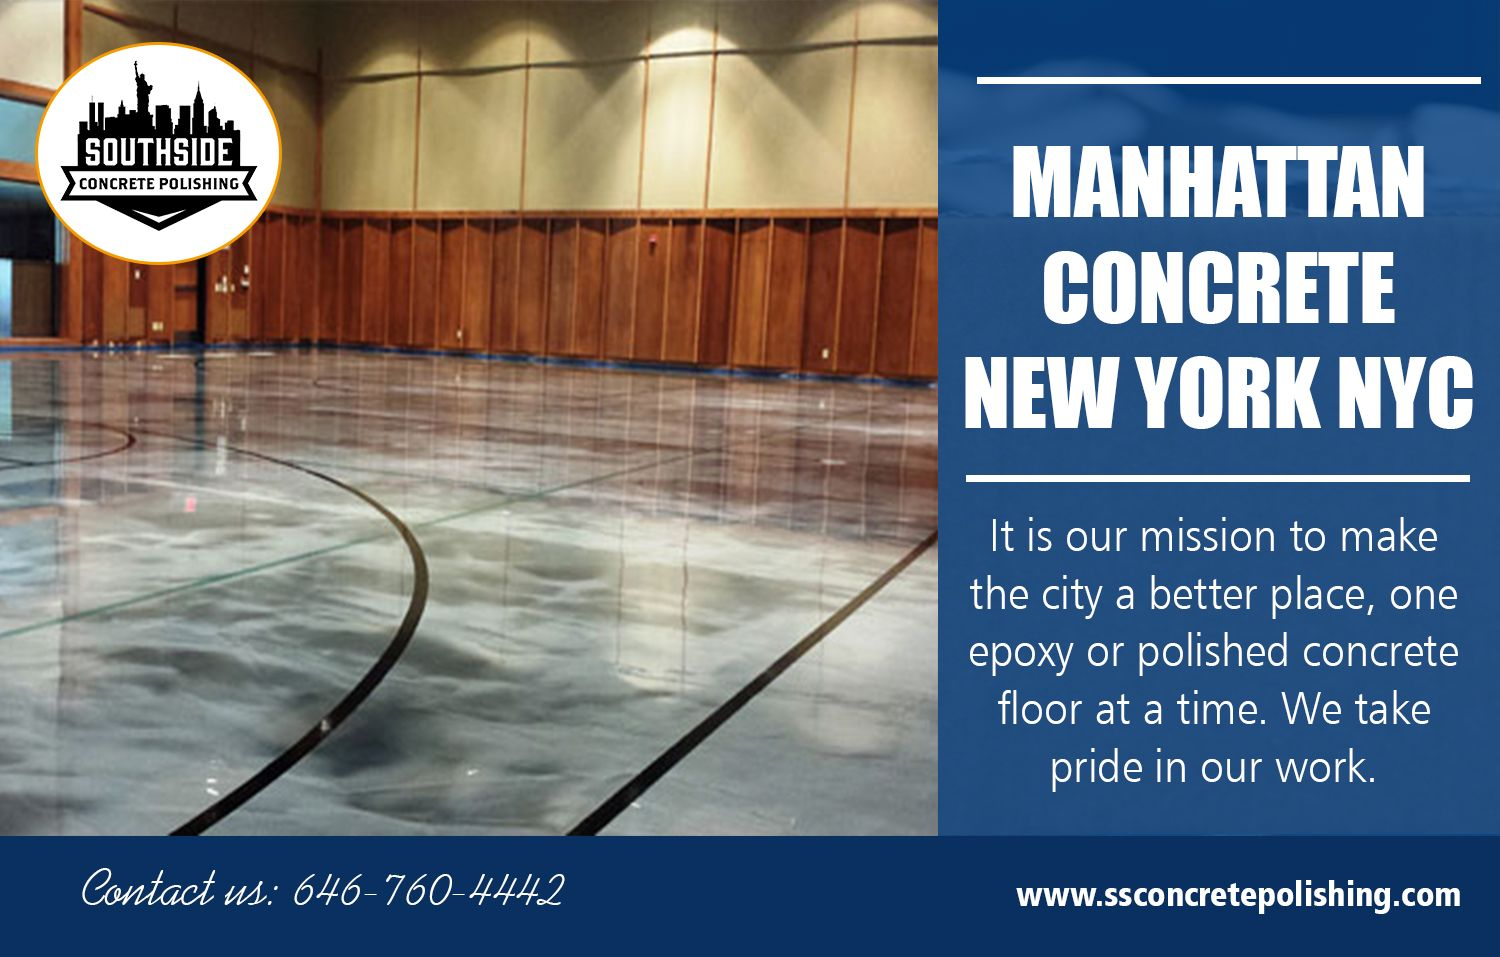 Pin by Polished concreteNYC on manhattan concrete new york